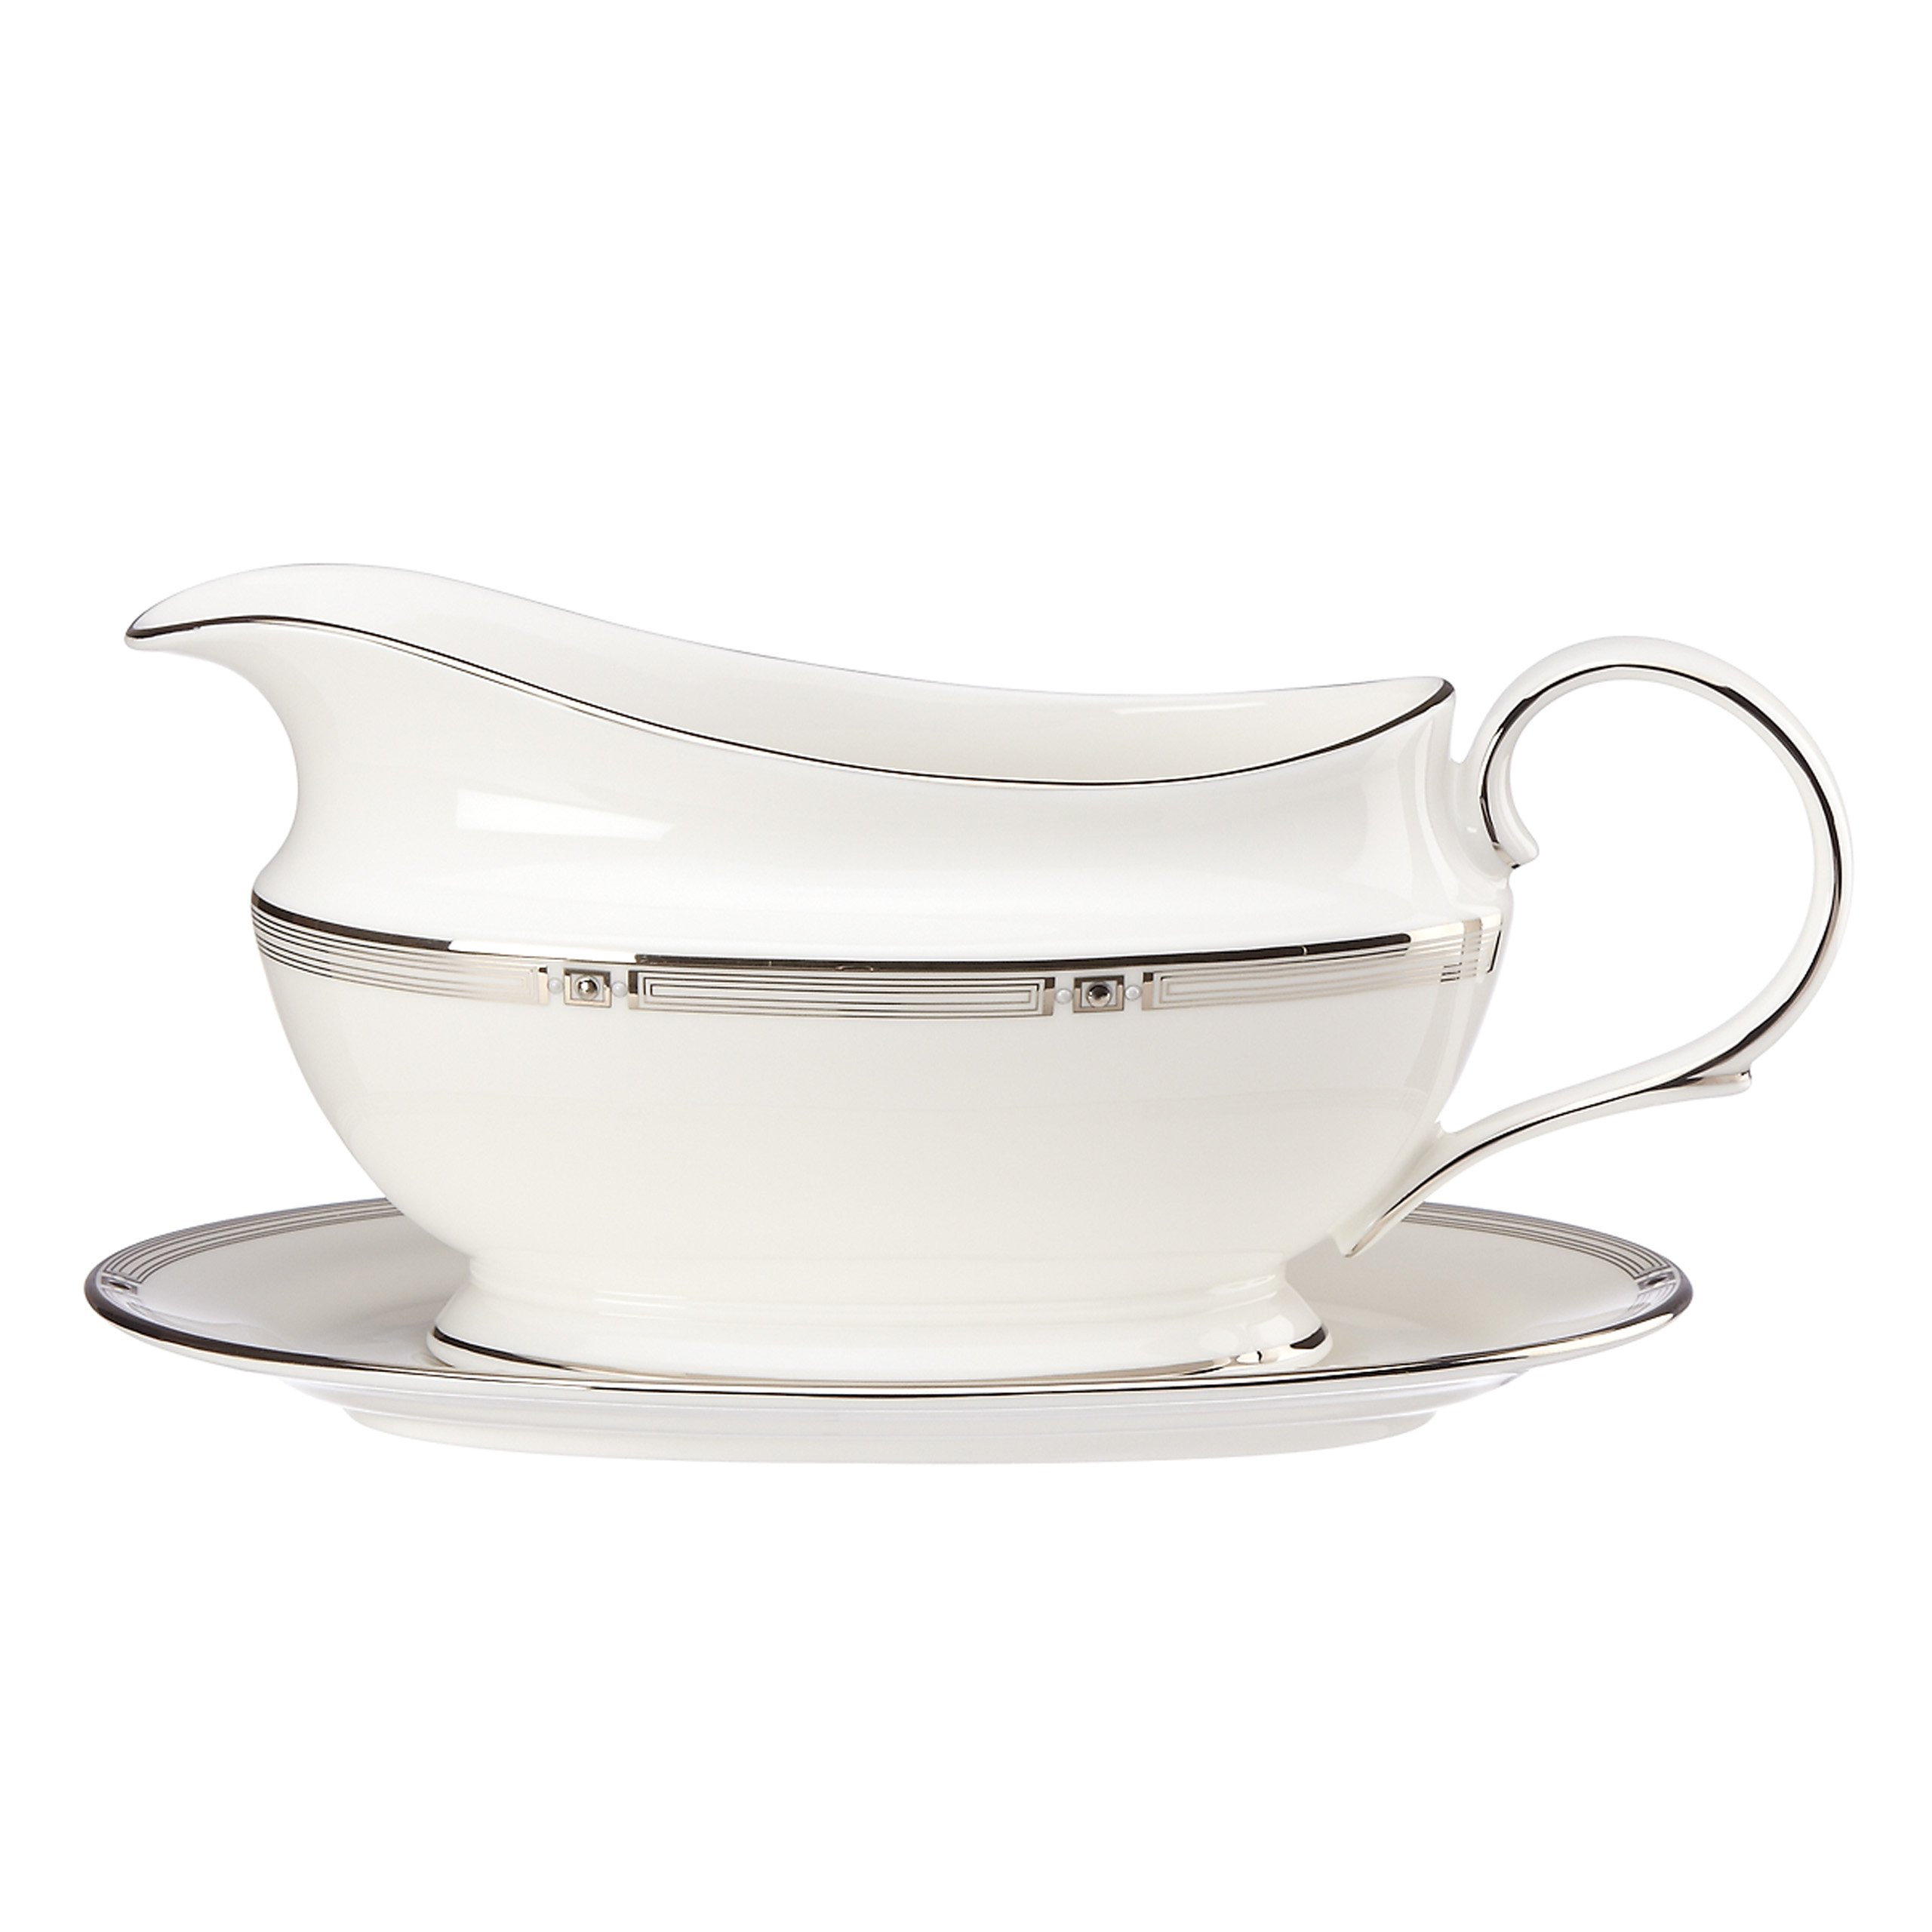 Lenox Westerly Platinum Sauce Boat and Stand, White by Lenox